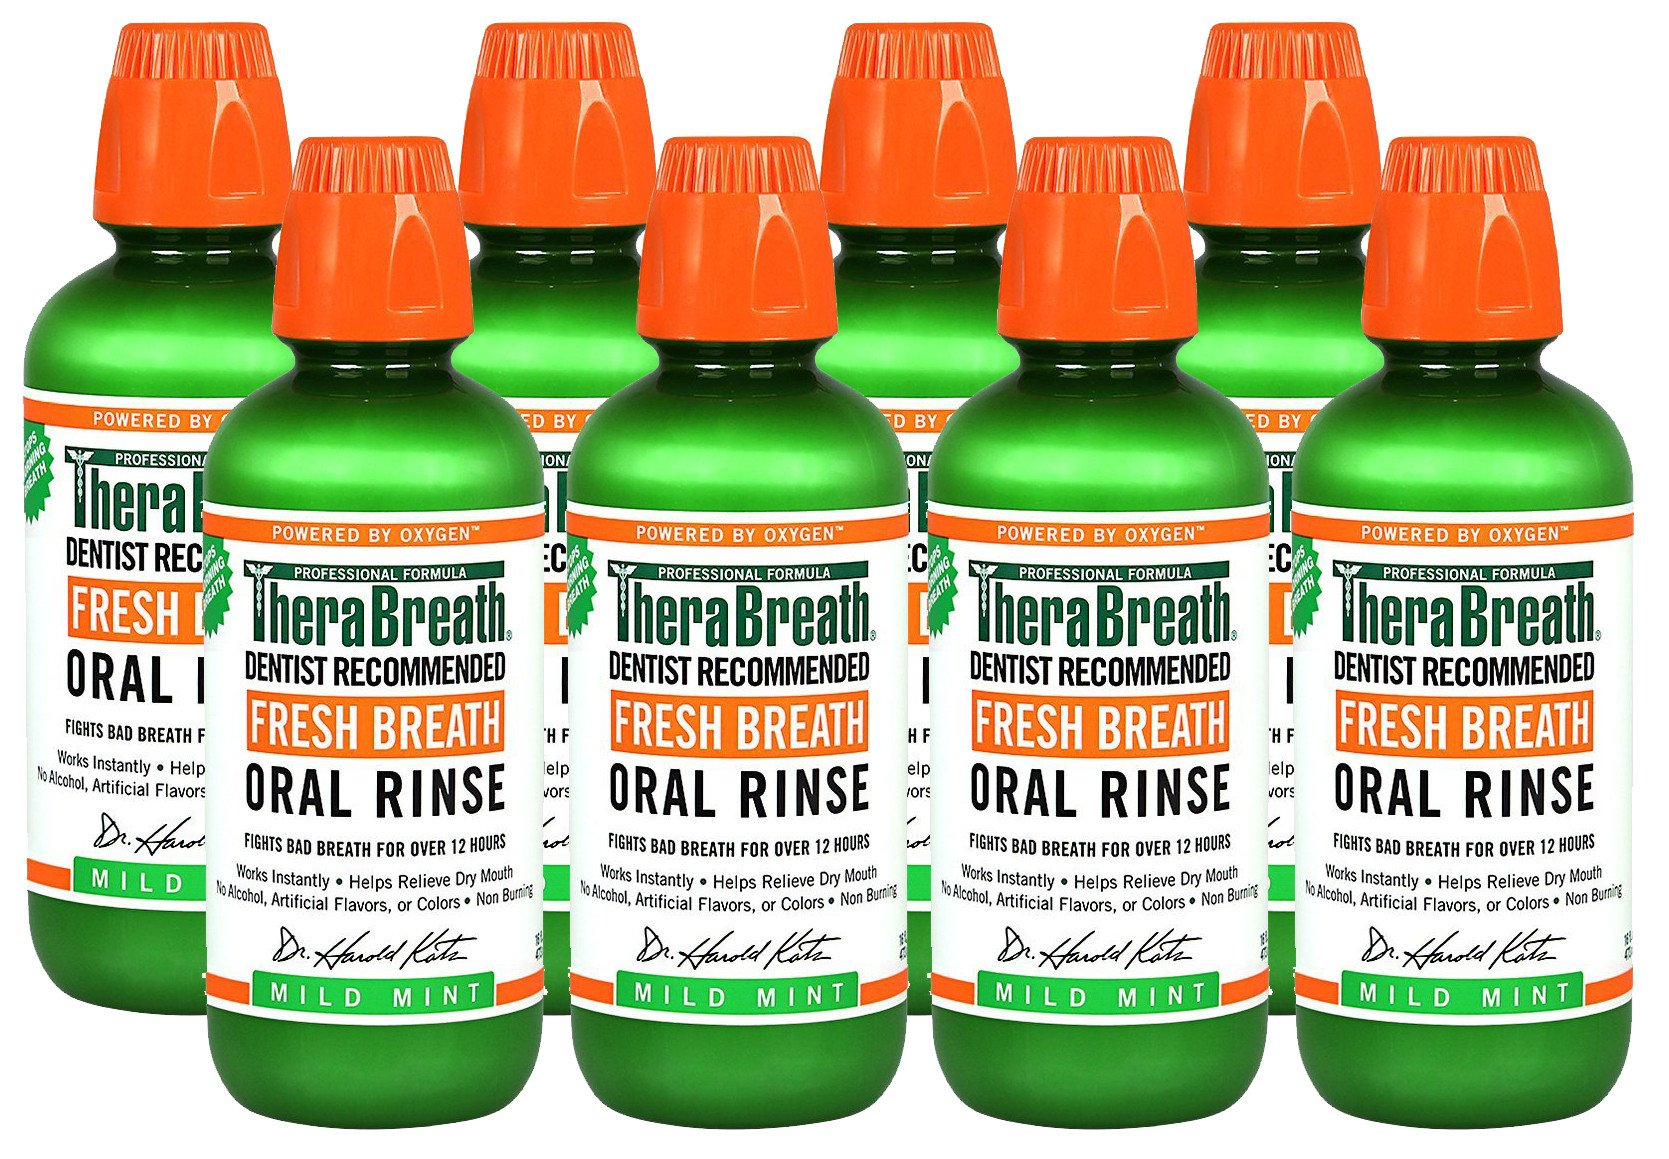 TheraBreath Dentist Recommended Fresh Breath Oral Rinse - Mild Mint Flavor ZOZlZn, 16 Ounce (Pack of 8) by TheraBreath